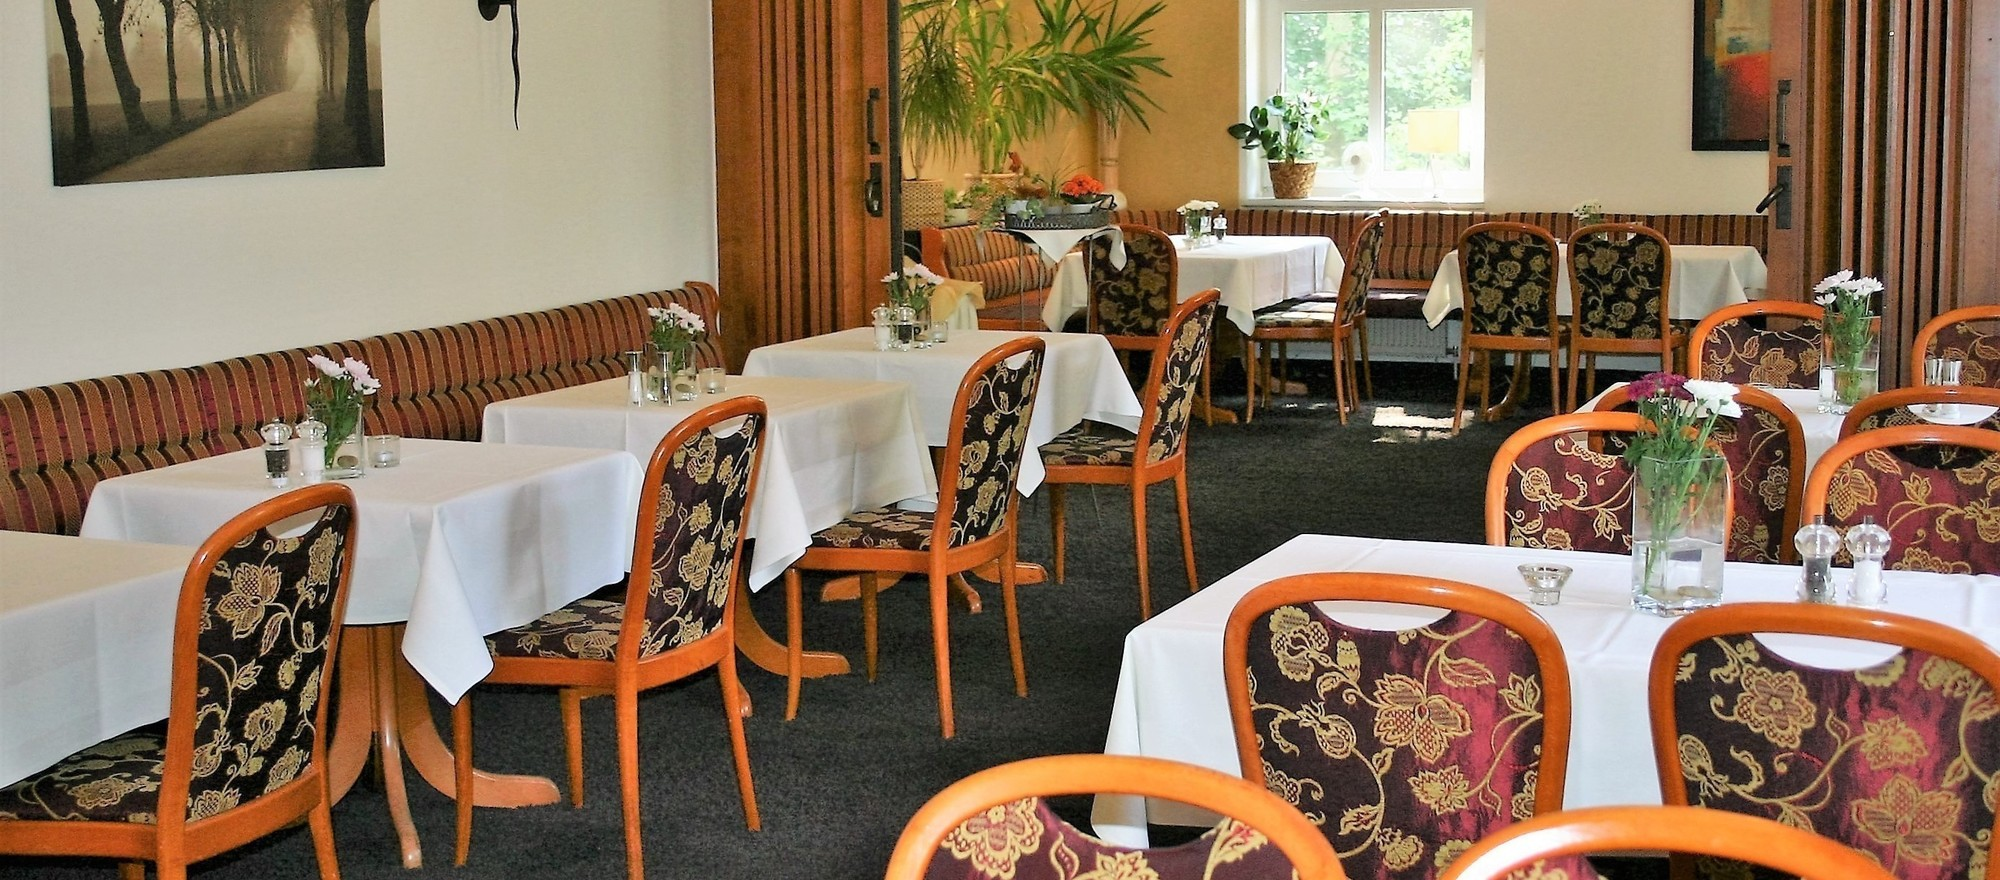 Restaurant in the 4-star hotel Ringhotel Villa Margarete in Waren